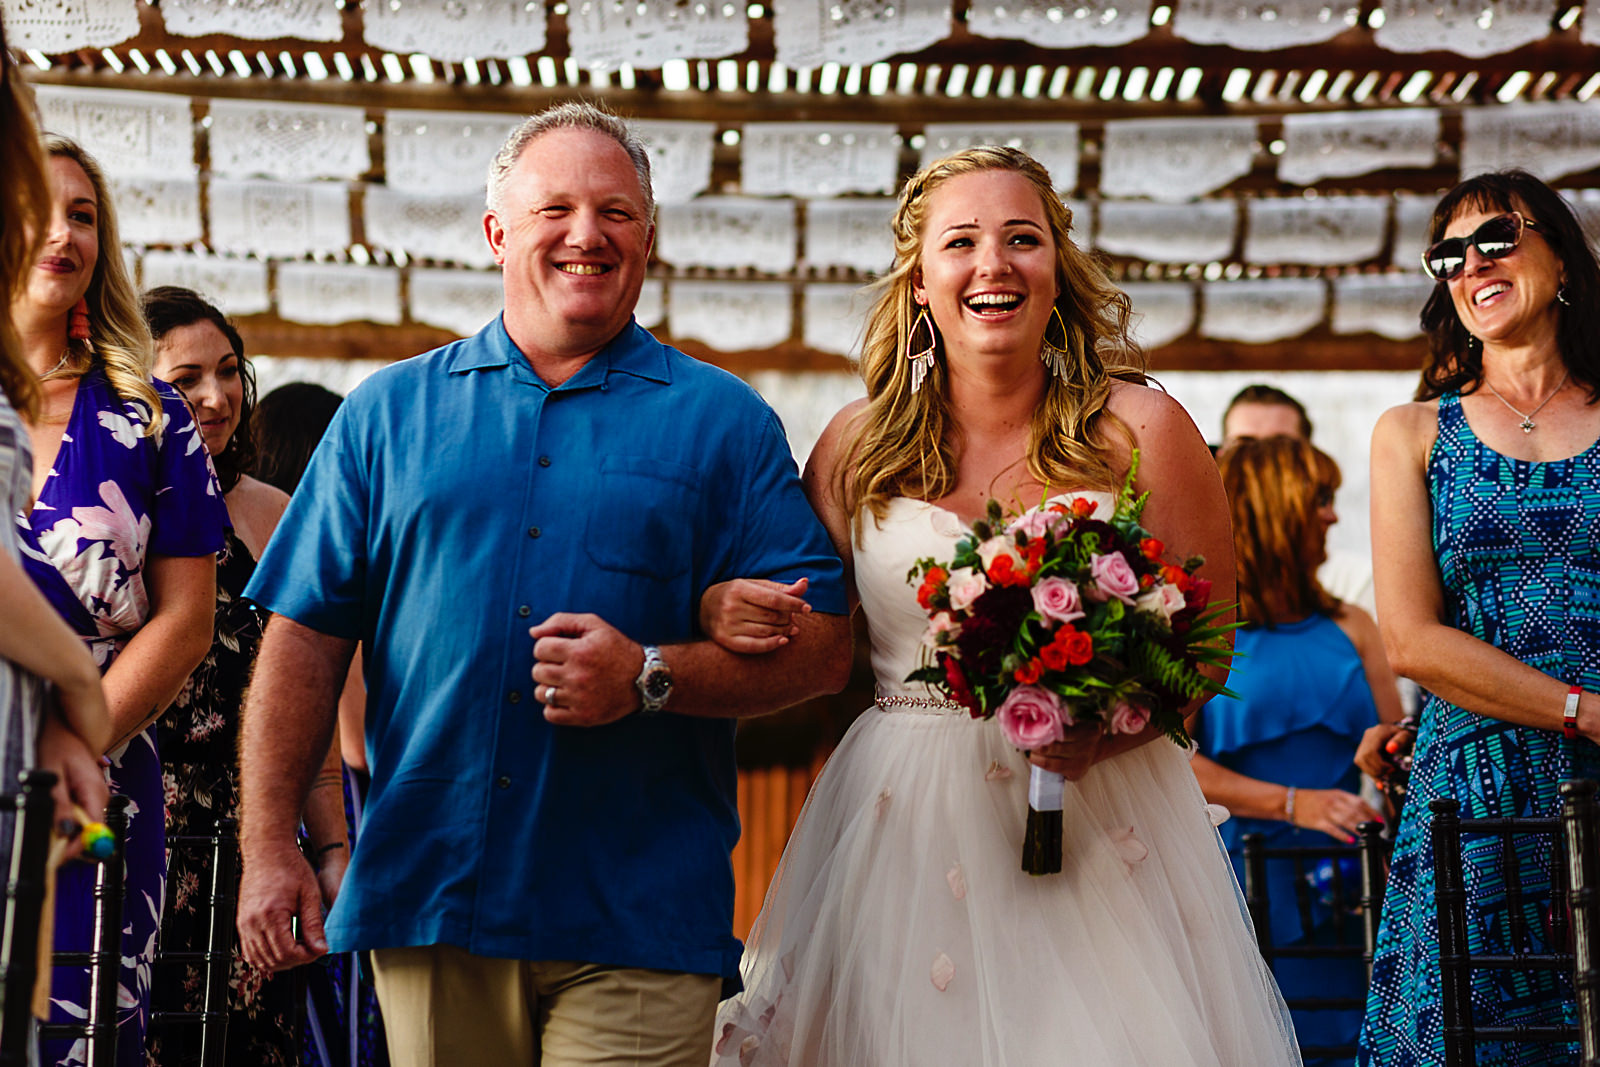 bride-father-walking-down-aisle-happy-love.jpg